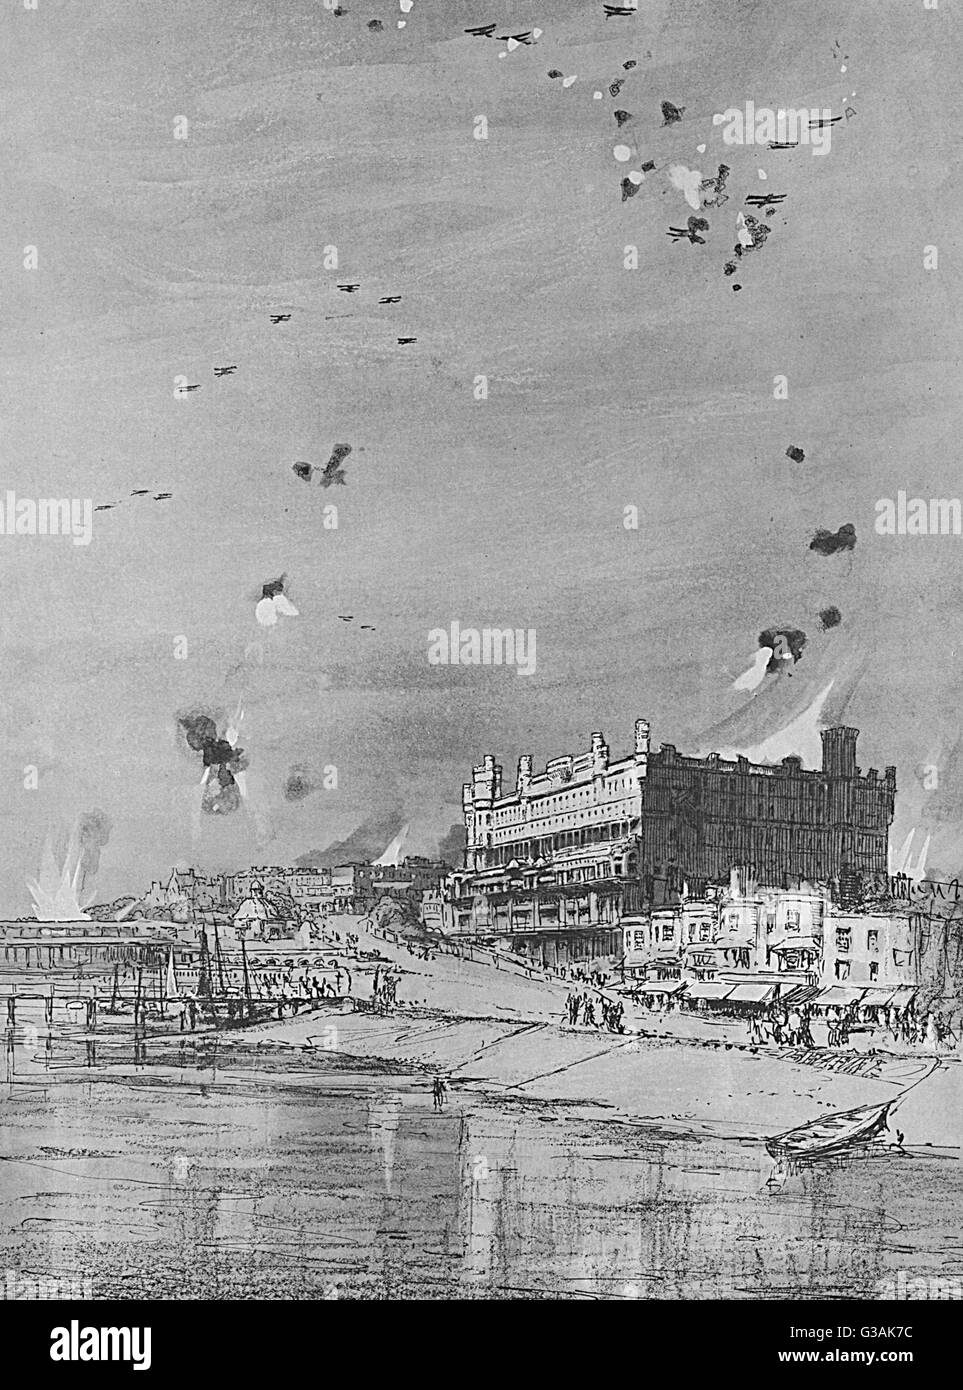 An air raid over Southend-on-Sea in Essex on 12 August 1917 in which 10 men, 13 women and 9 children were killed. - Stock Image